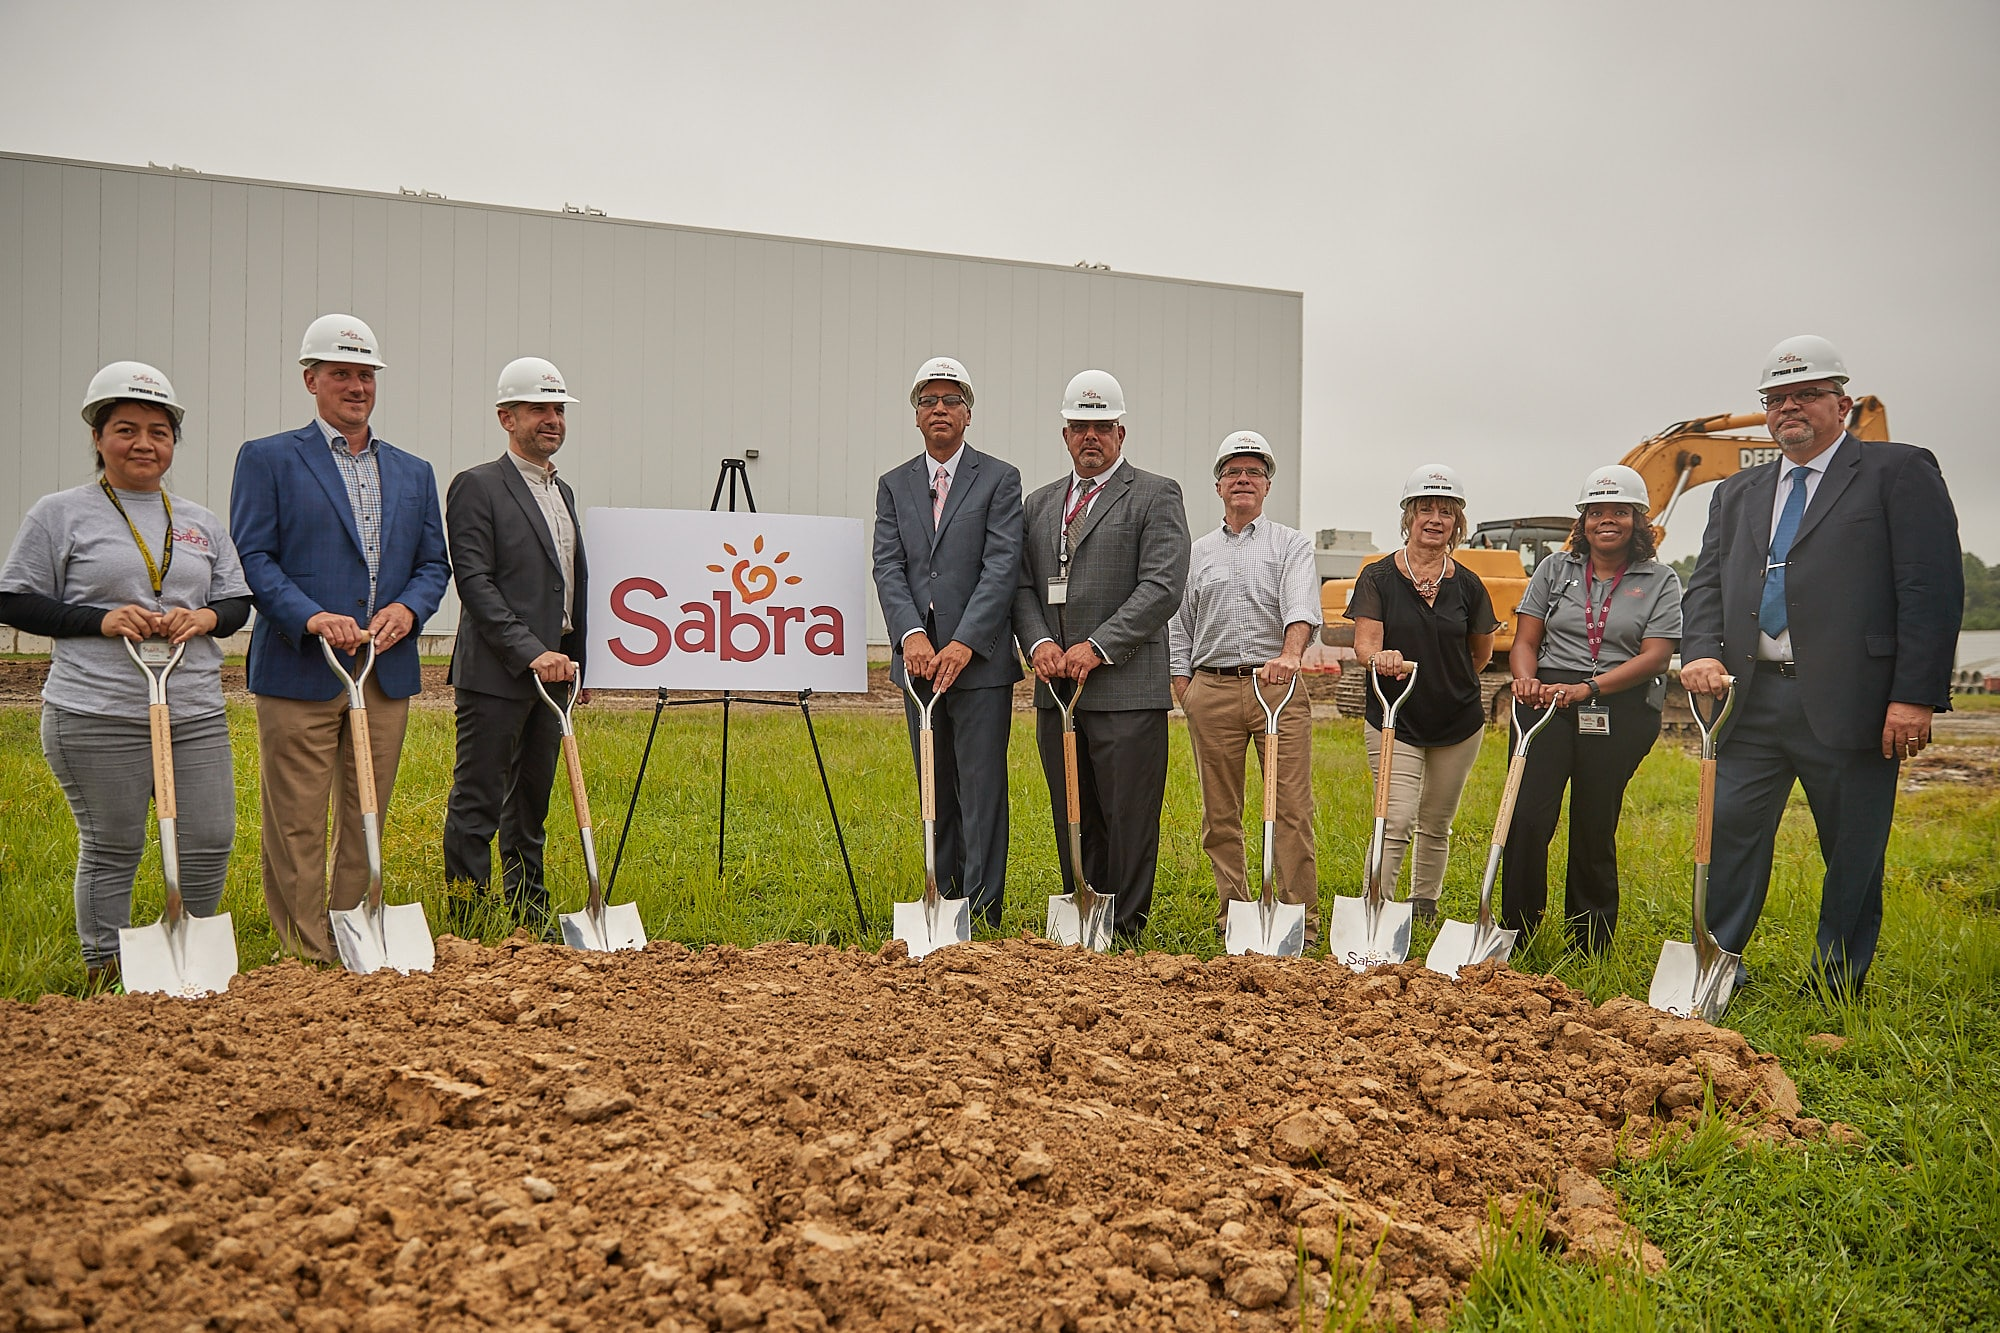 Sabra Breaks Ground on Expansion at Hummus Plant